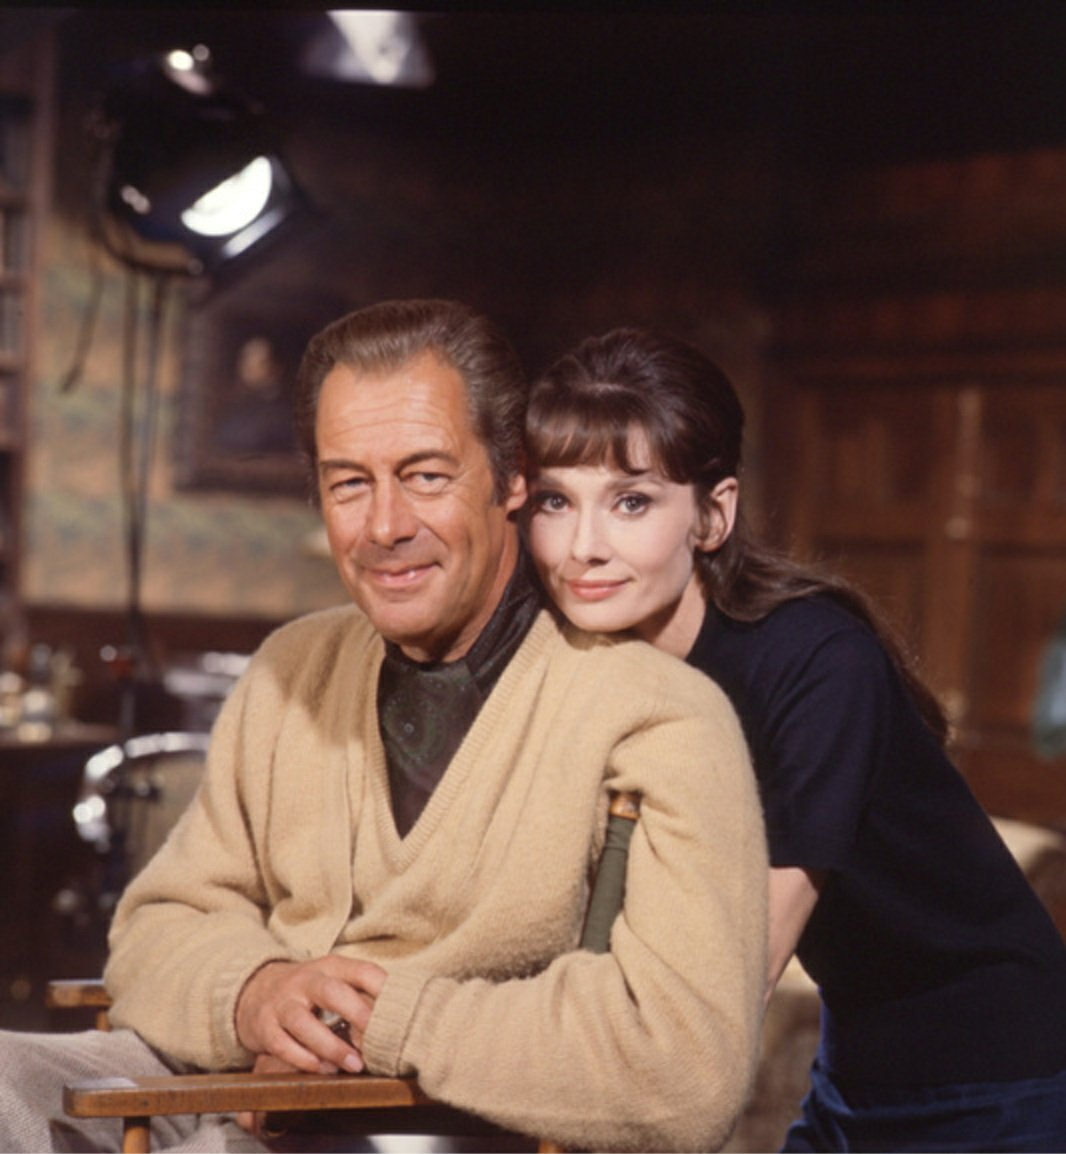 Audrey Hepburn On Twitter Happy Birthday Rex Harrison Rex Harrison And Audrey Hepburn Photographed By Bob Willoughby For My Fair Lady 1963 Https T Co Bunkyoys04